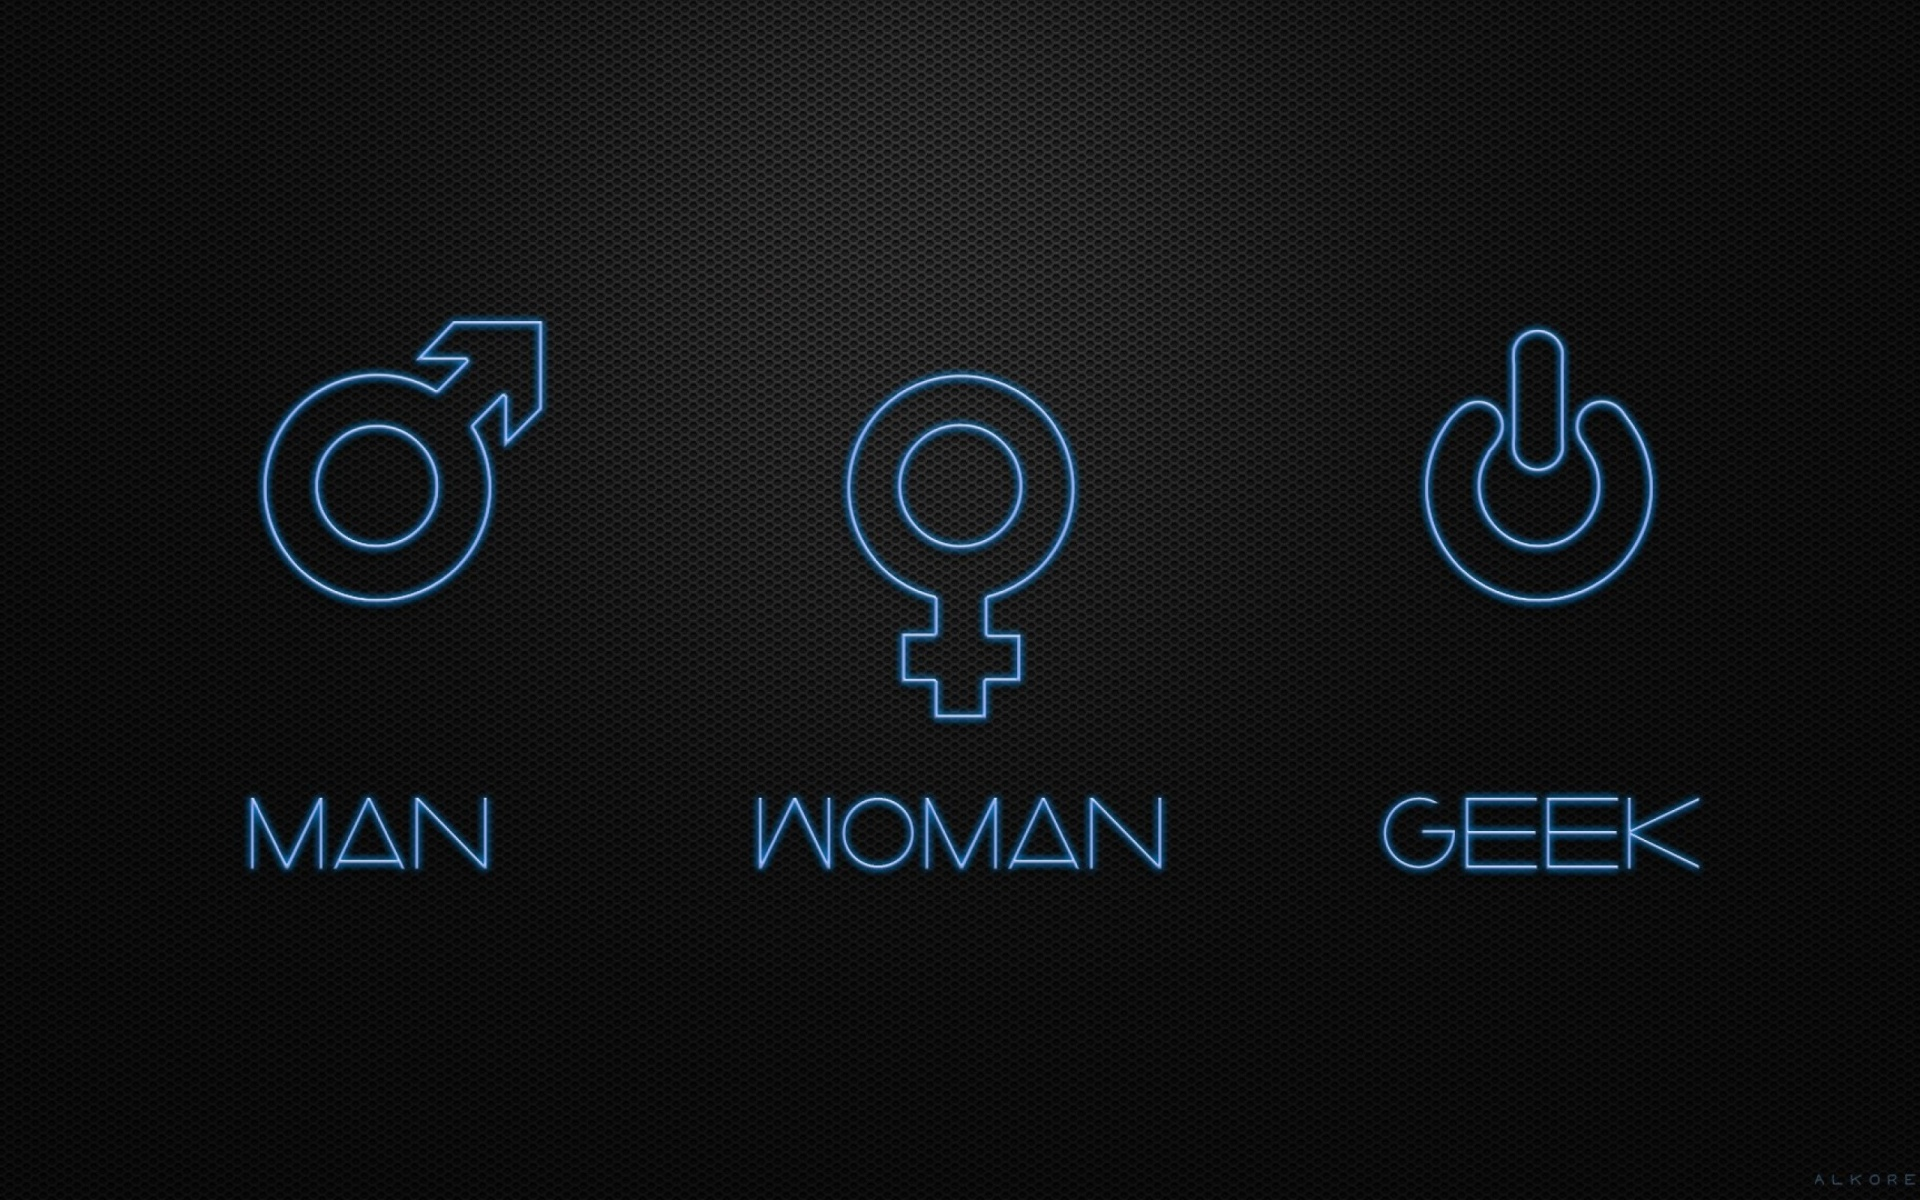 Man-Woman-Geek-1920x1200.jpg